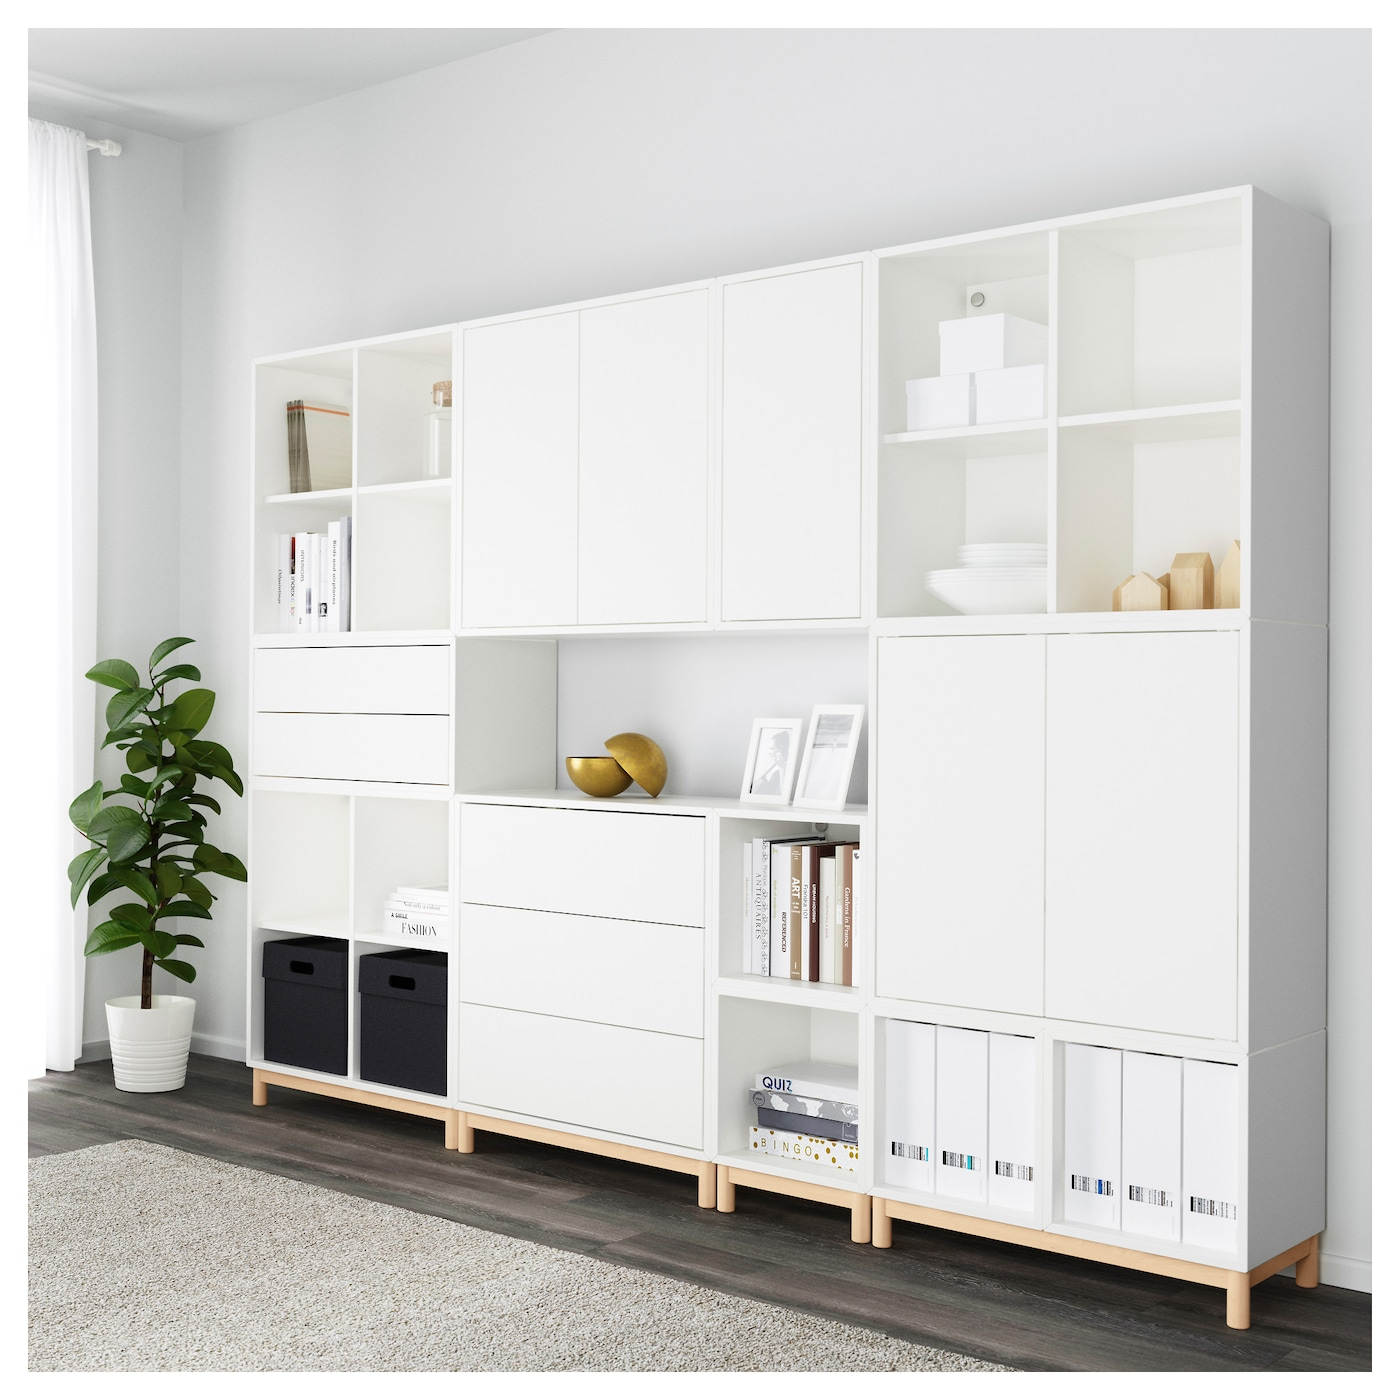 eket cabinet combination with legs white 245 x 35 x 185 cm ikea. Black Bedroom Furniture Sets. Home Design Ideas